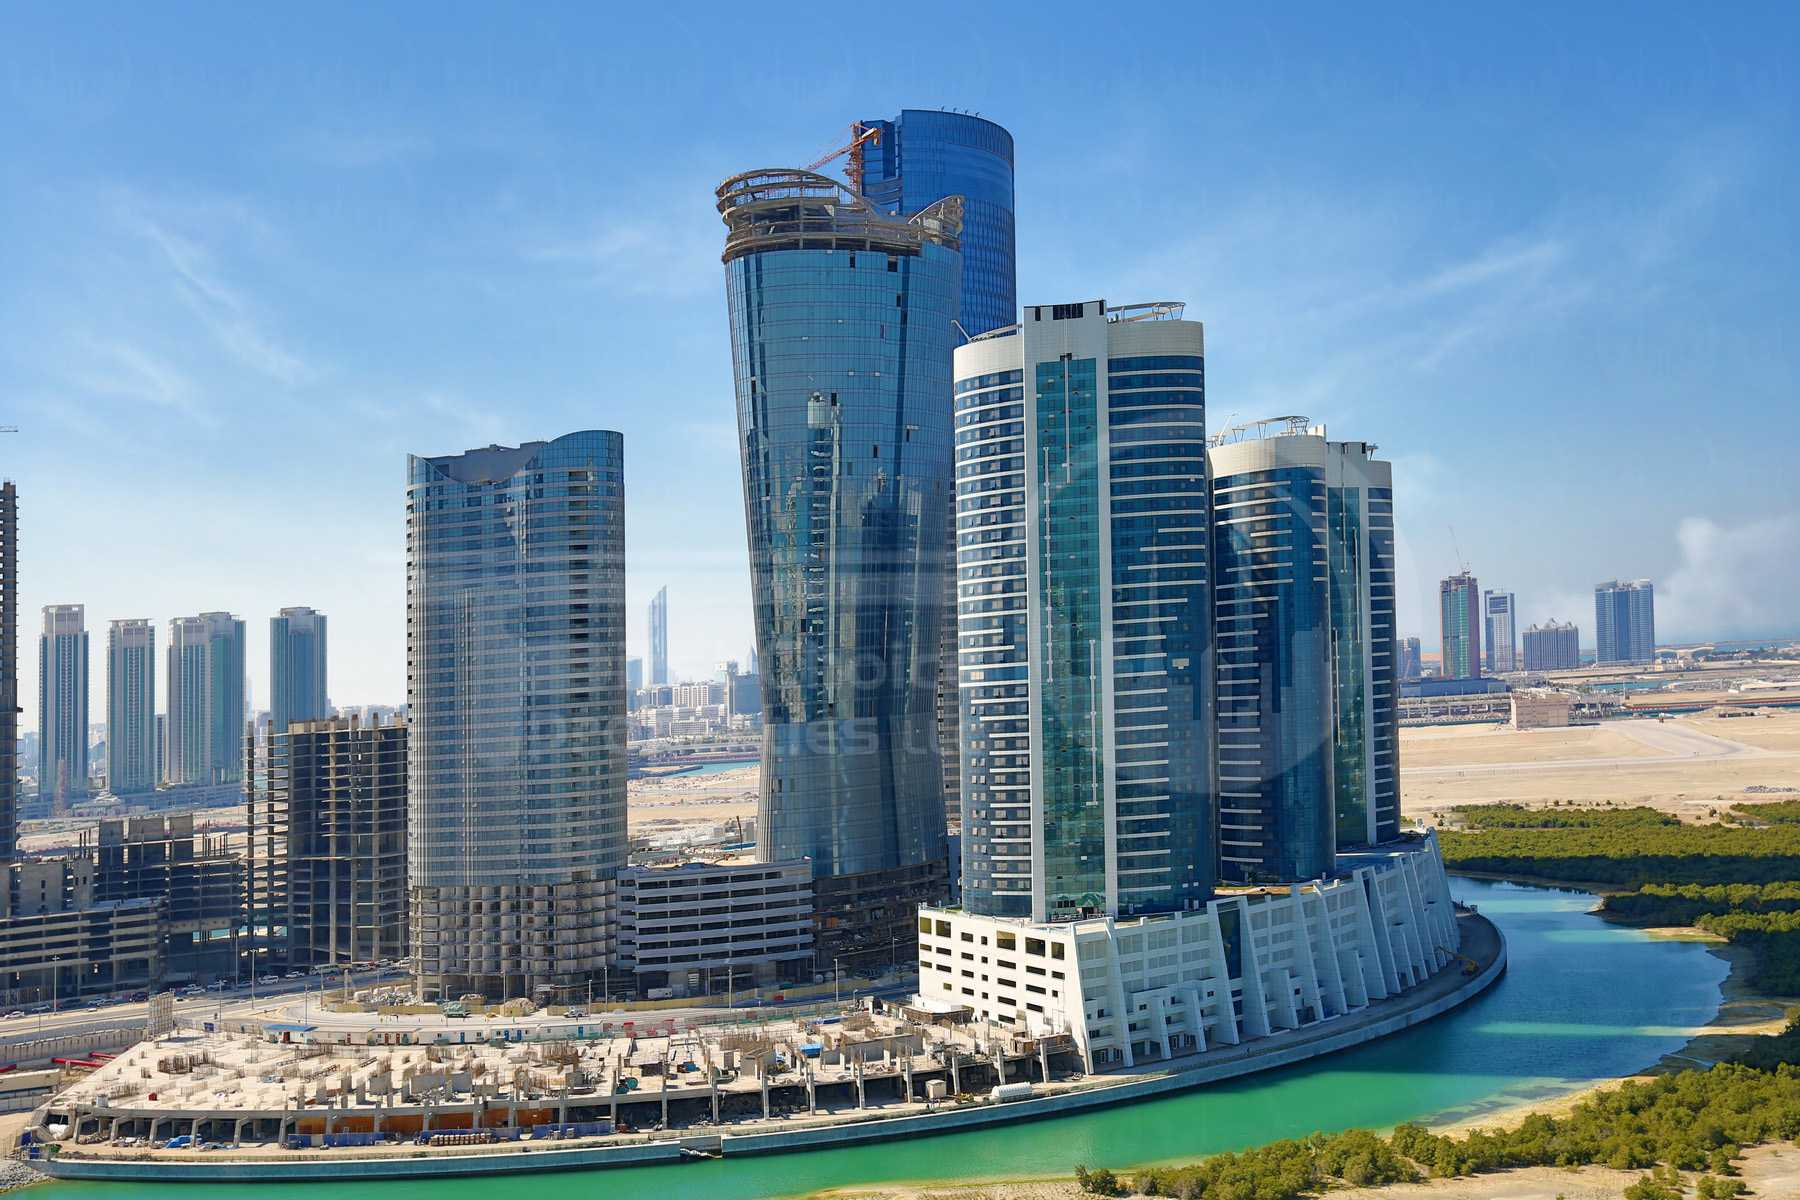 Studio - 1BR - 2BR - 3BR - 4BR Apartment - Abu Dhabi - UAE - Al Reem Island - Hydra Avenue - Outside View (21).jpg